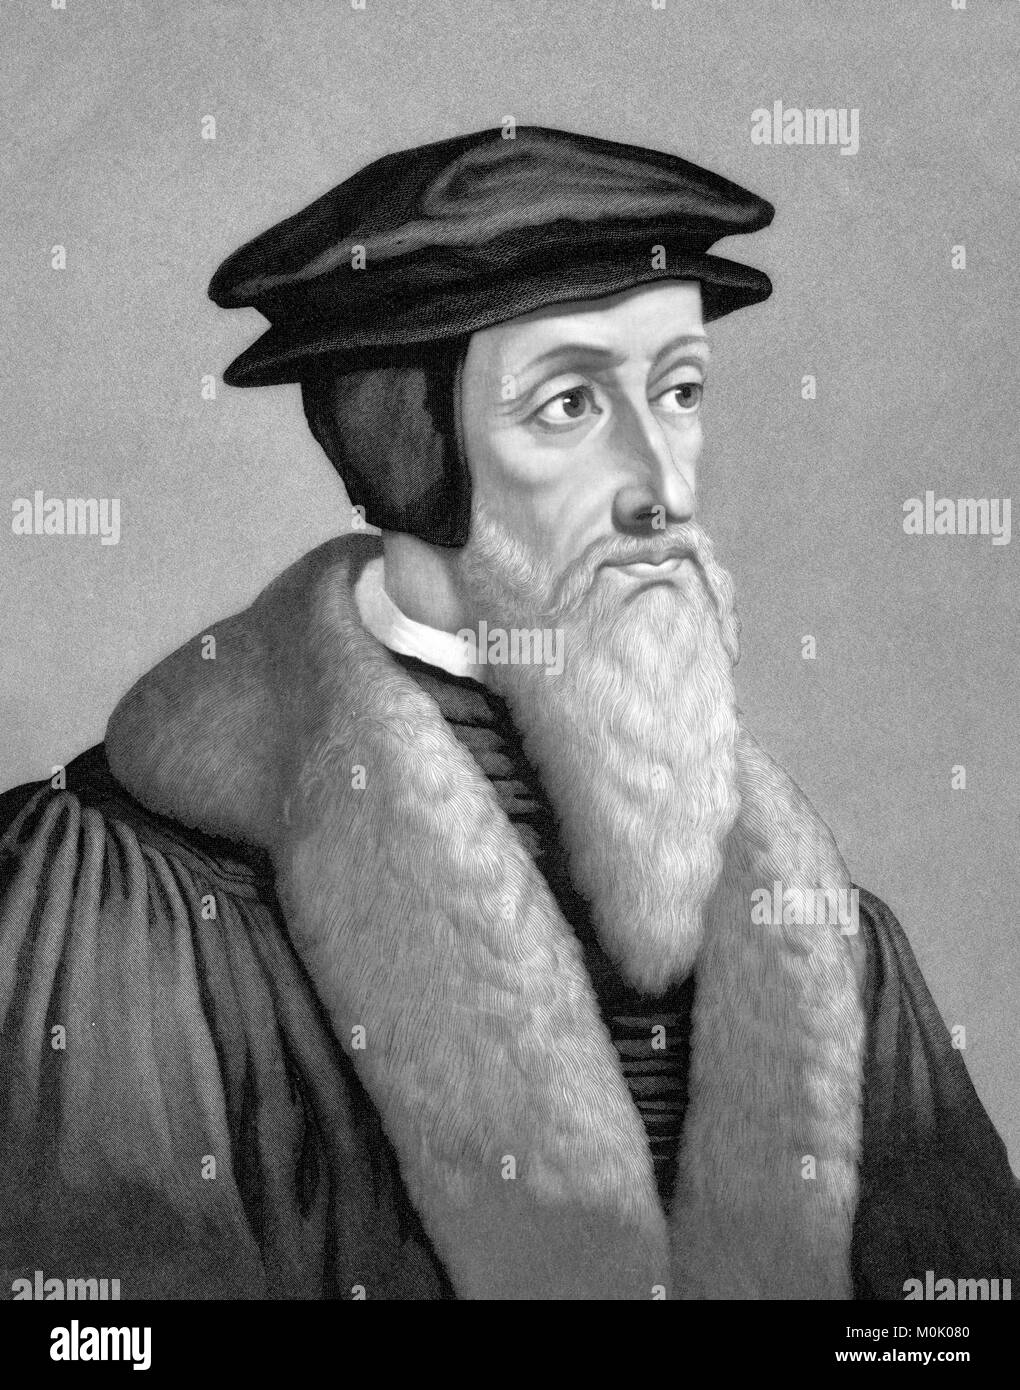 John Calvin (1509-1564), portrait of the French theologian and protestant reformer. An 1886 engraving by John Sartain Stock Photo